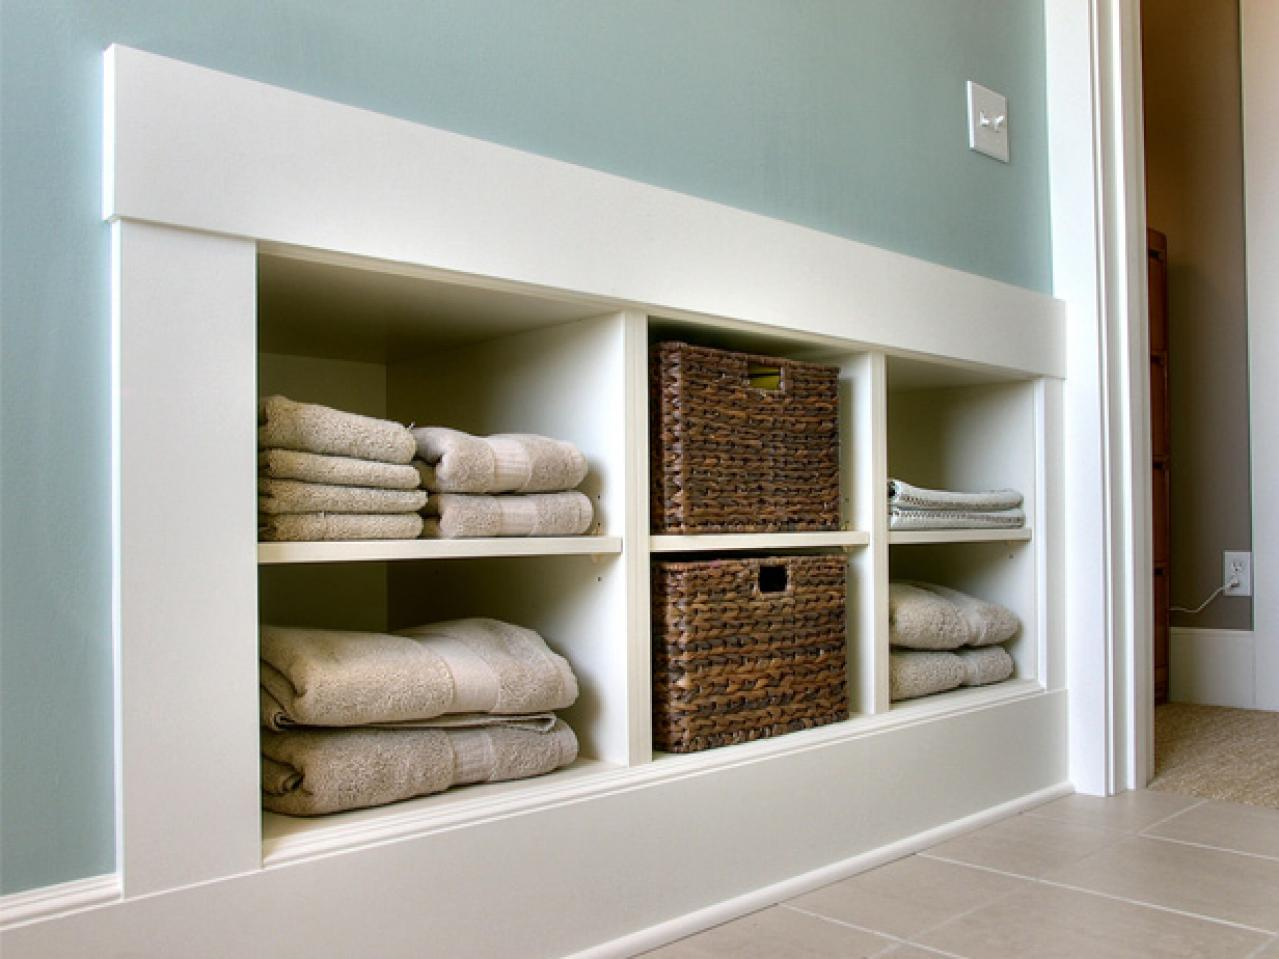 Laundry room storage ideas diy laundry room storage ideas amipublicfo Image collections